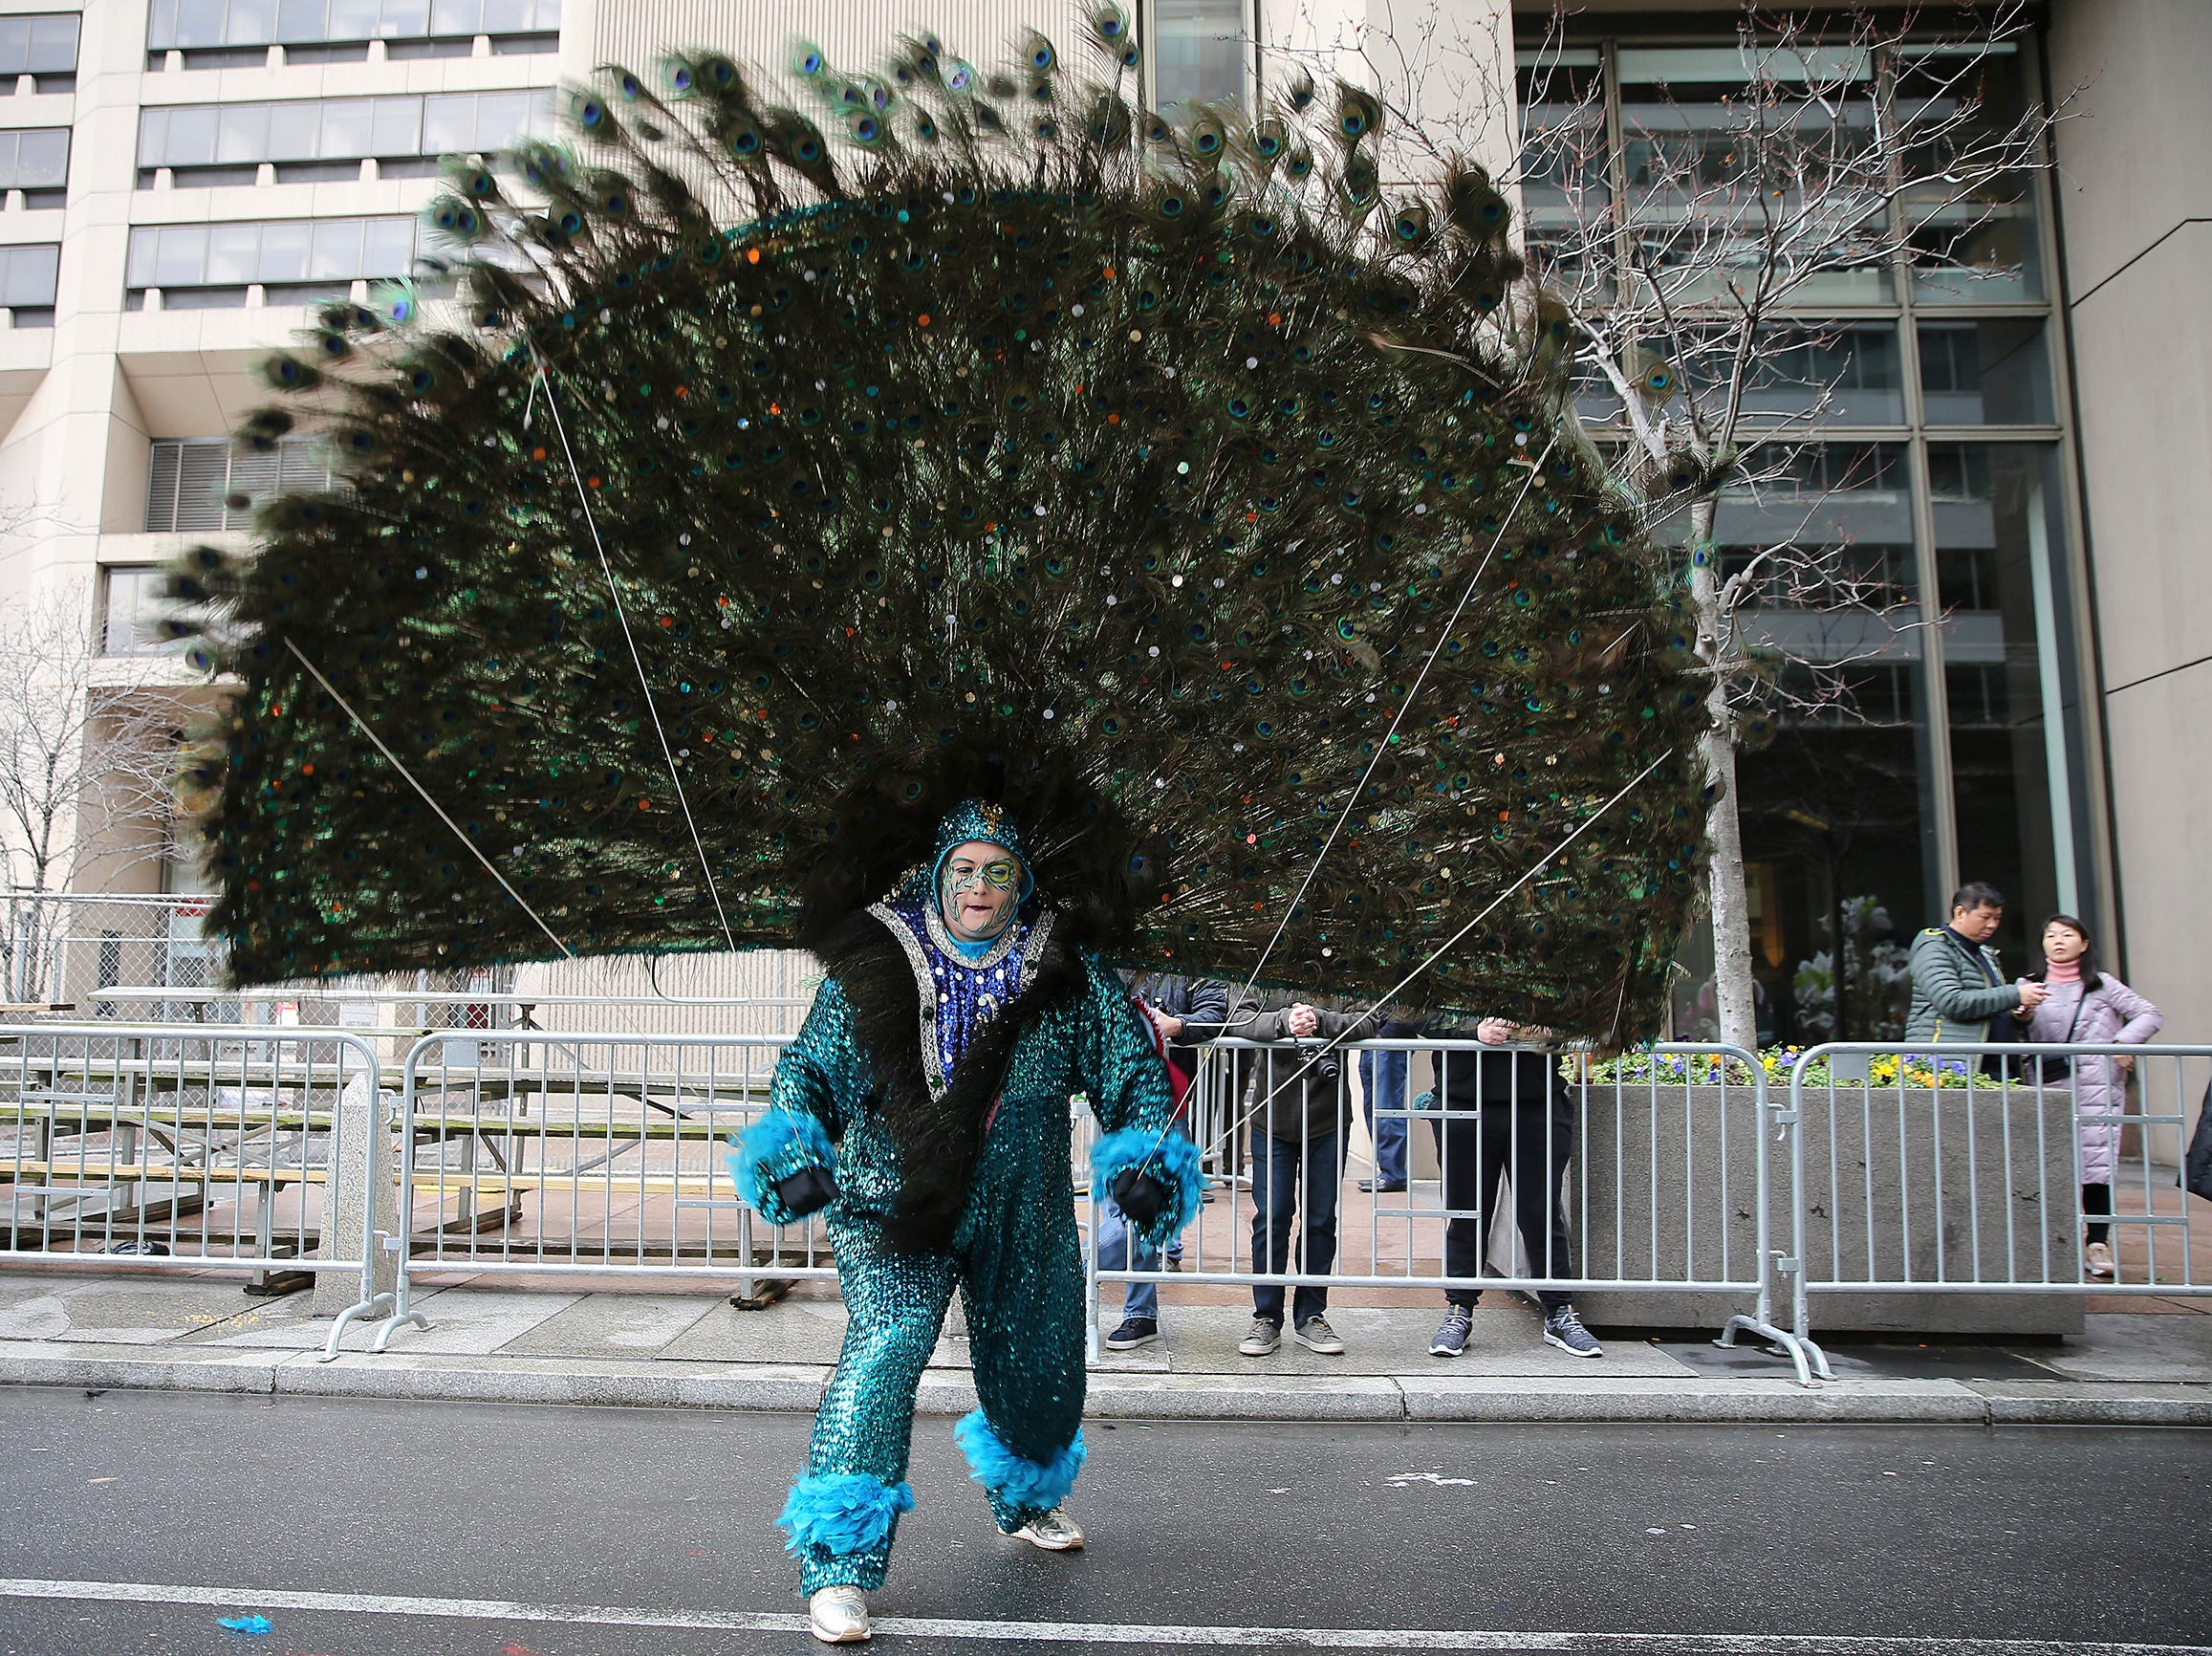 Jennifer Hensell, of Golden Sunrise Fancy Brigade, fights the wind as she waits for the start of the Mummers Parade, Tuesday, Jan. 1, 2019, in Philadelphia. (David Maialetti/The Philadelphia Inquirer via AP)